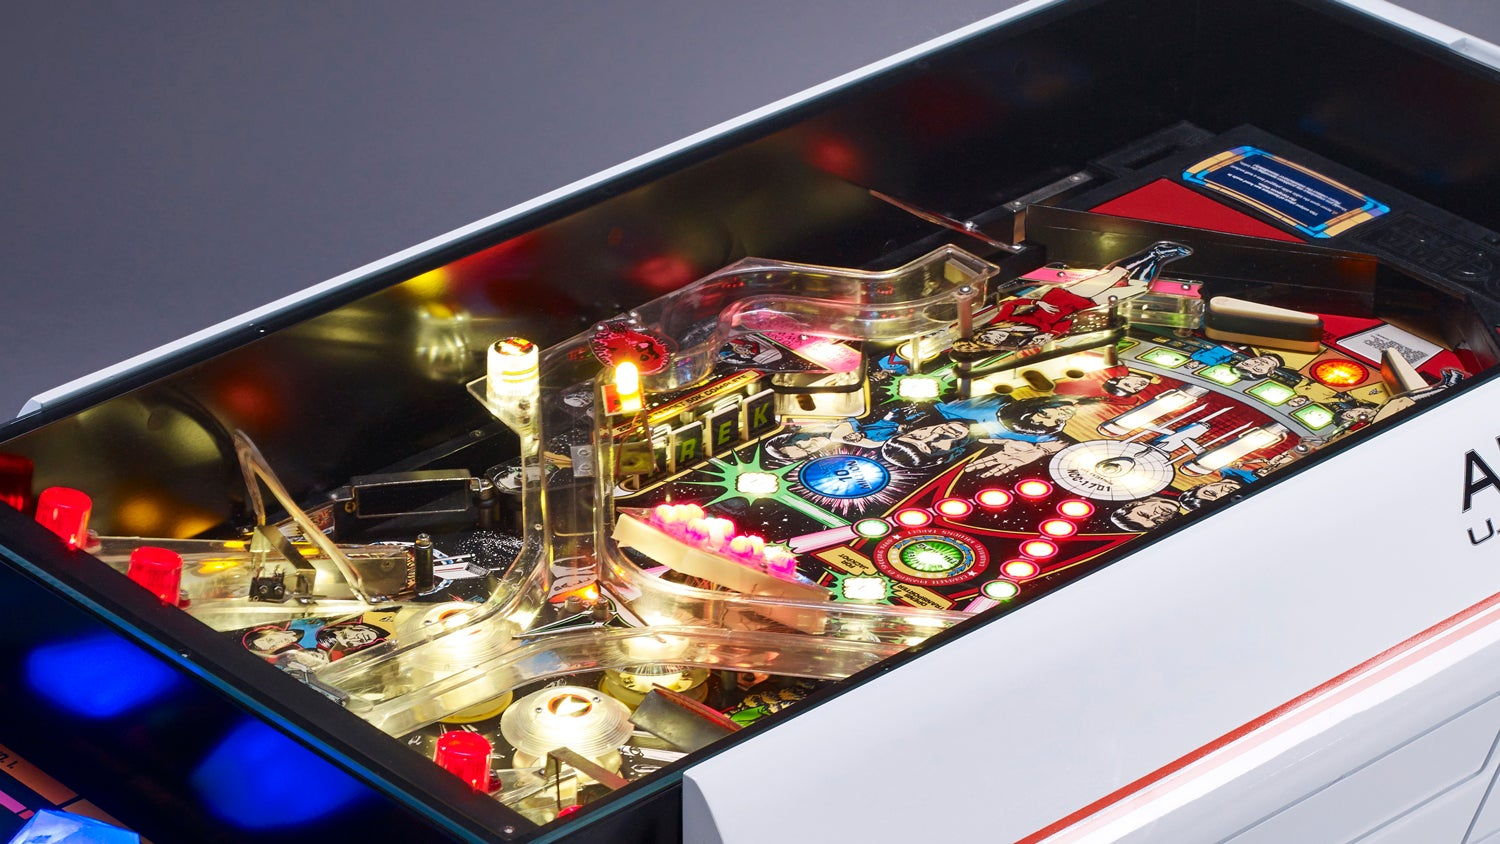 No Living Room Is Complete Without a Star Trek Pinball Machine Coffee Table